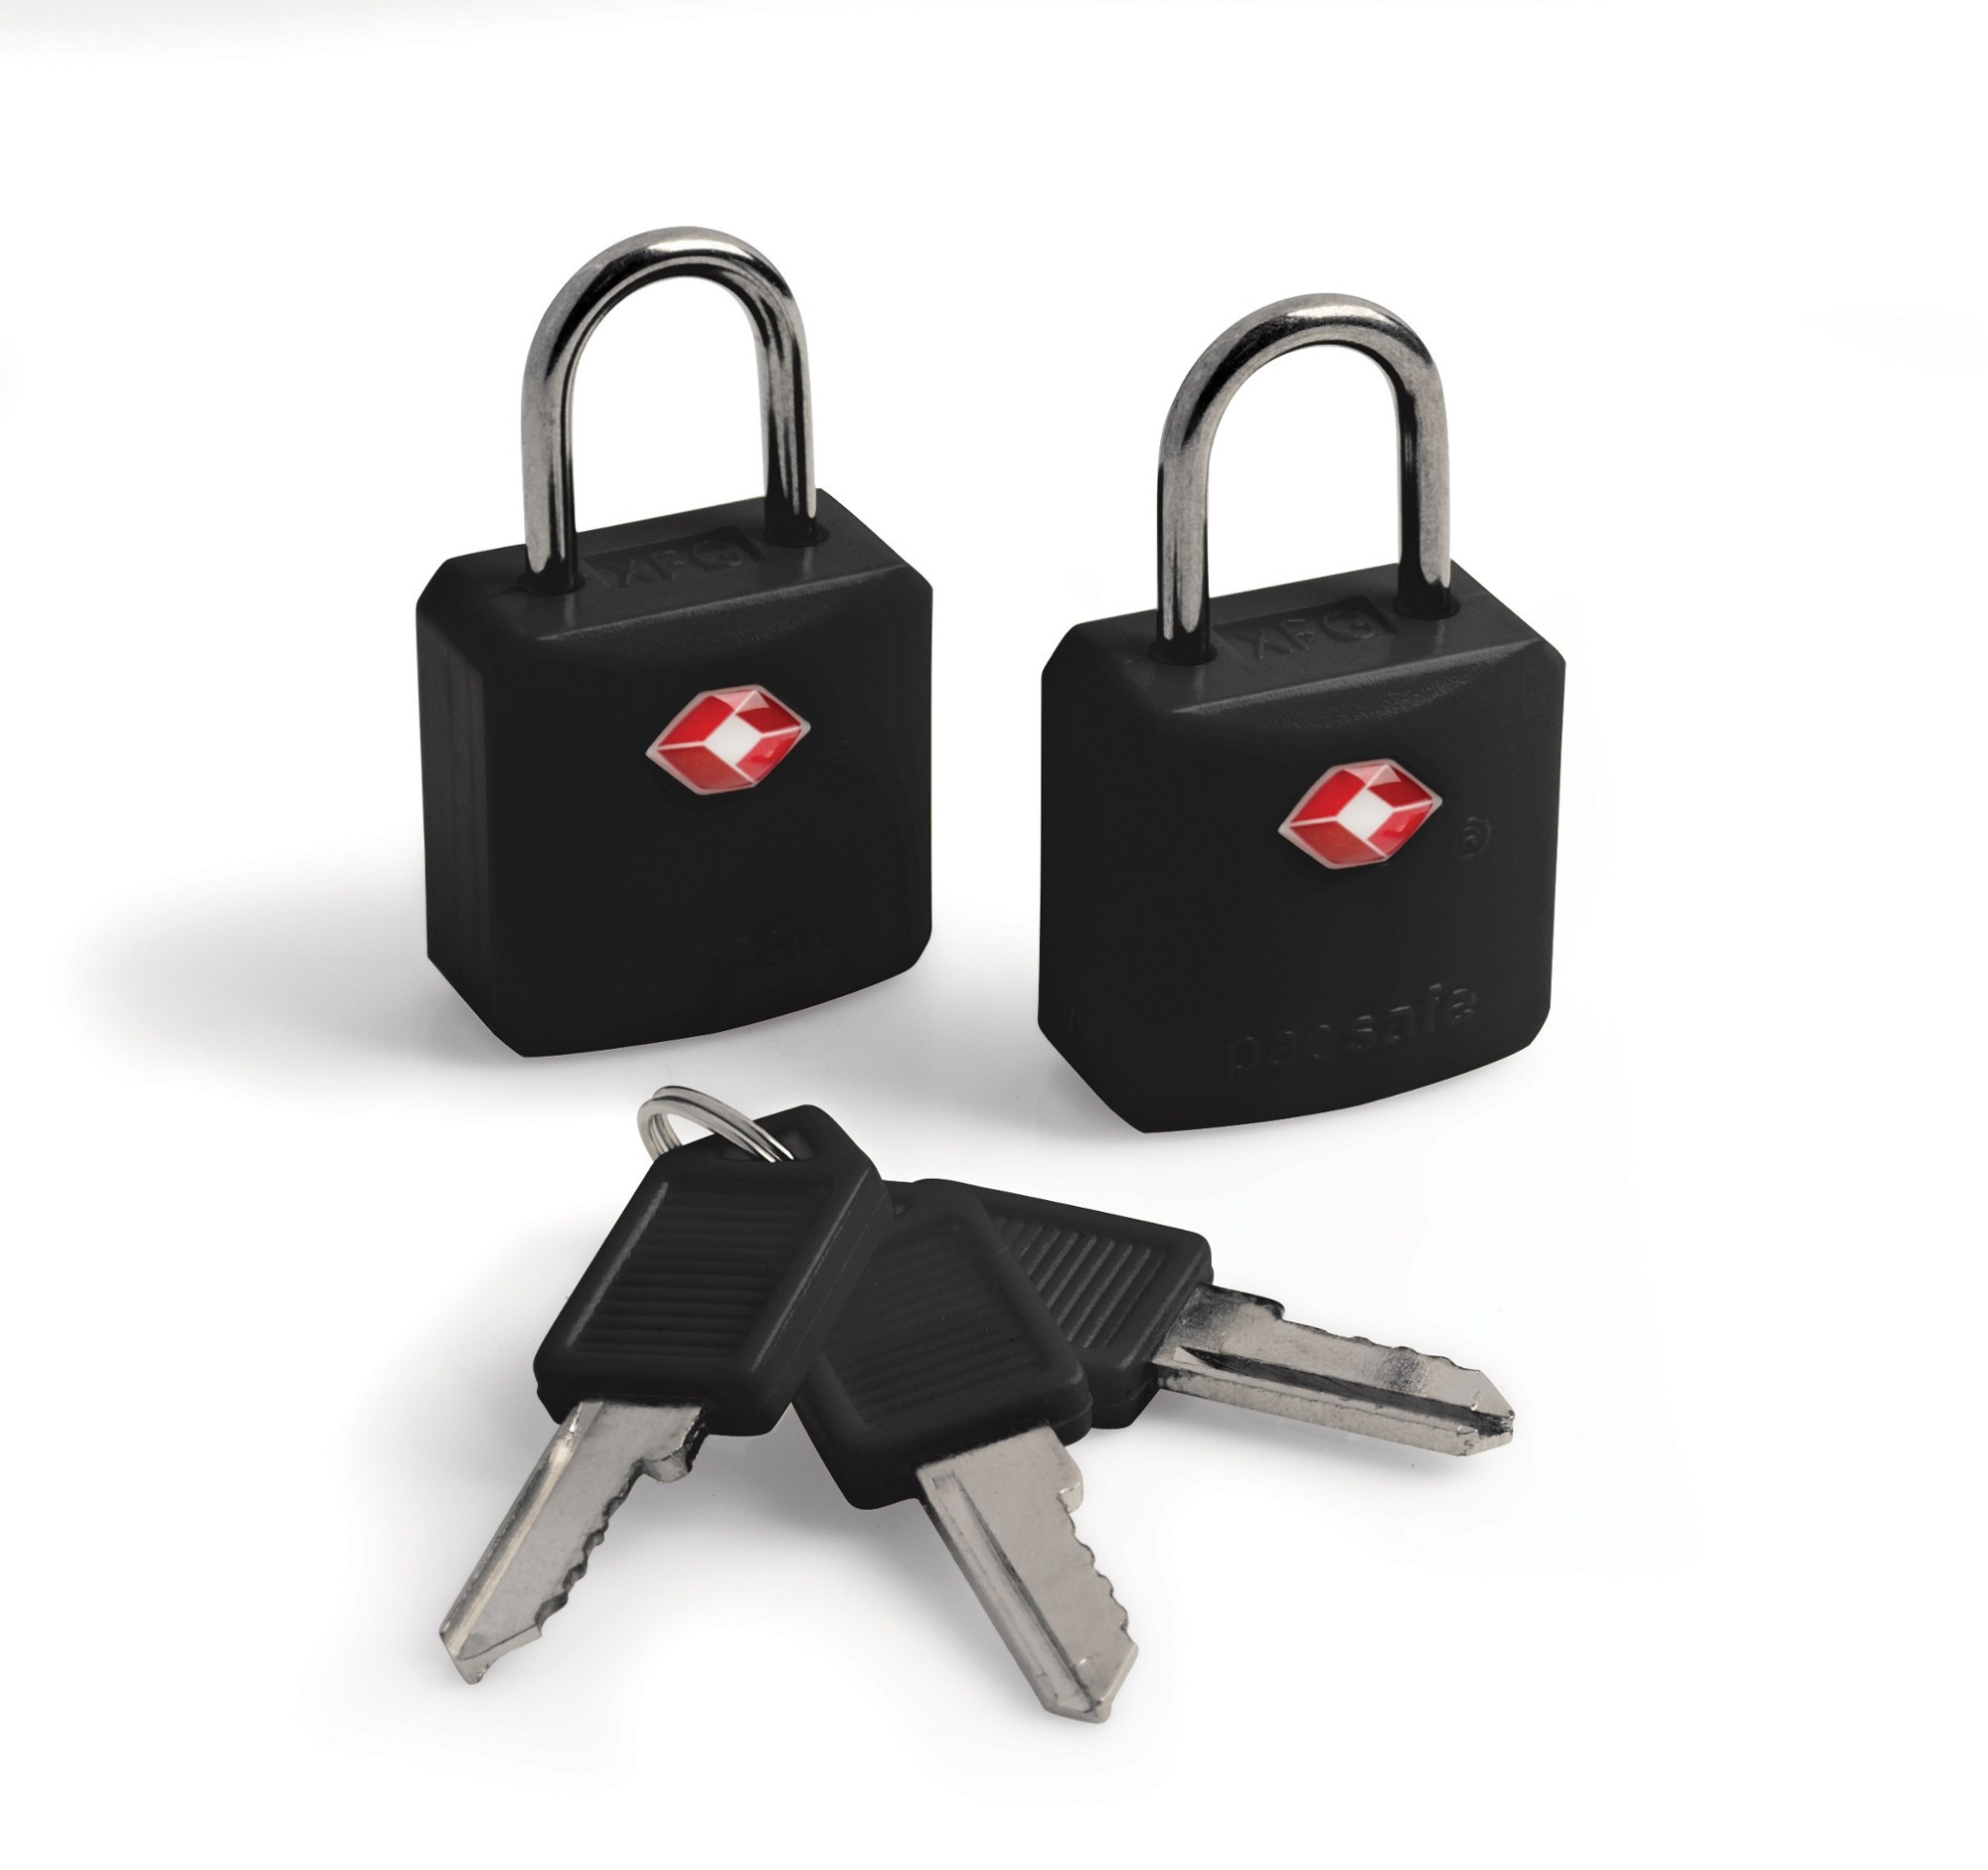 Pacsafe ProSafe 620 TSA Accepted Luggage Locks - Set of 2